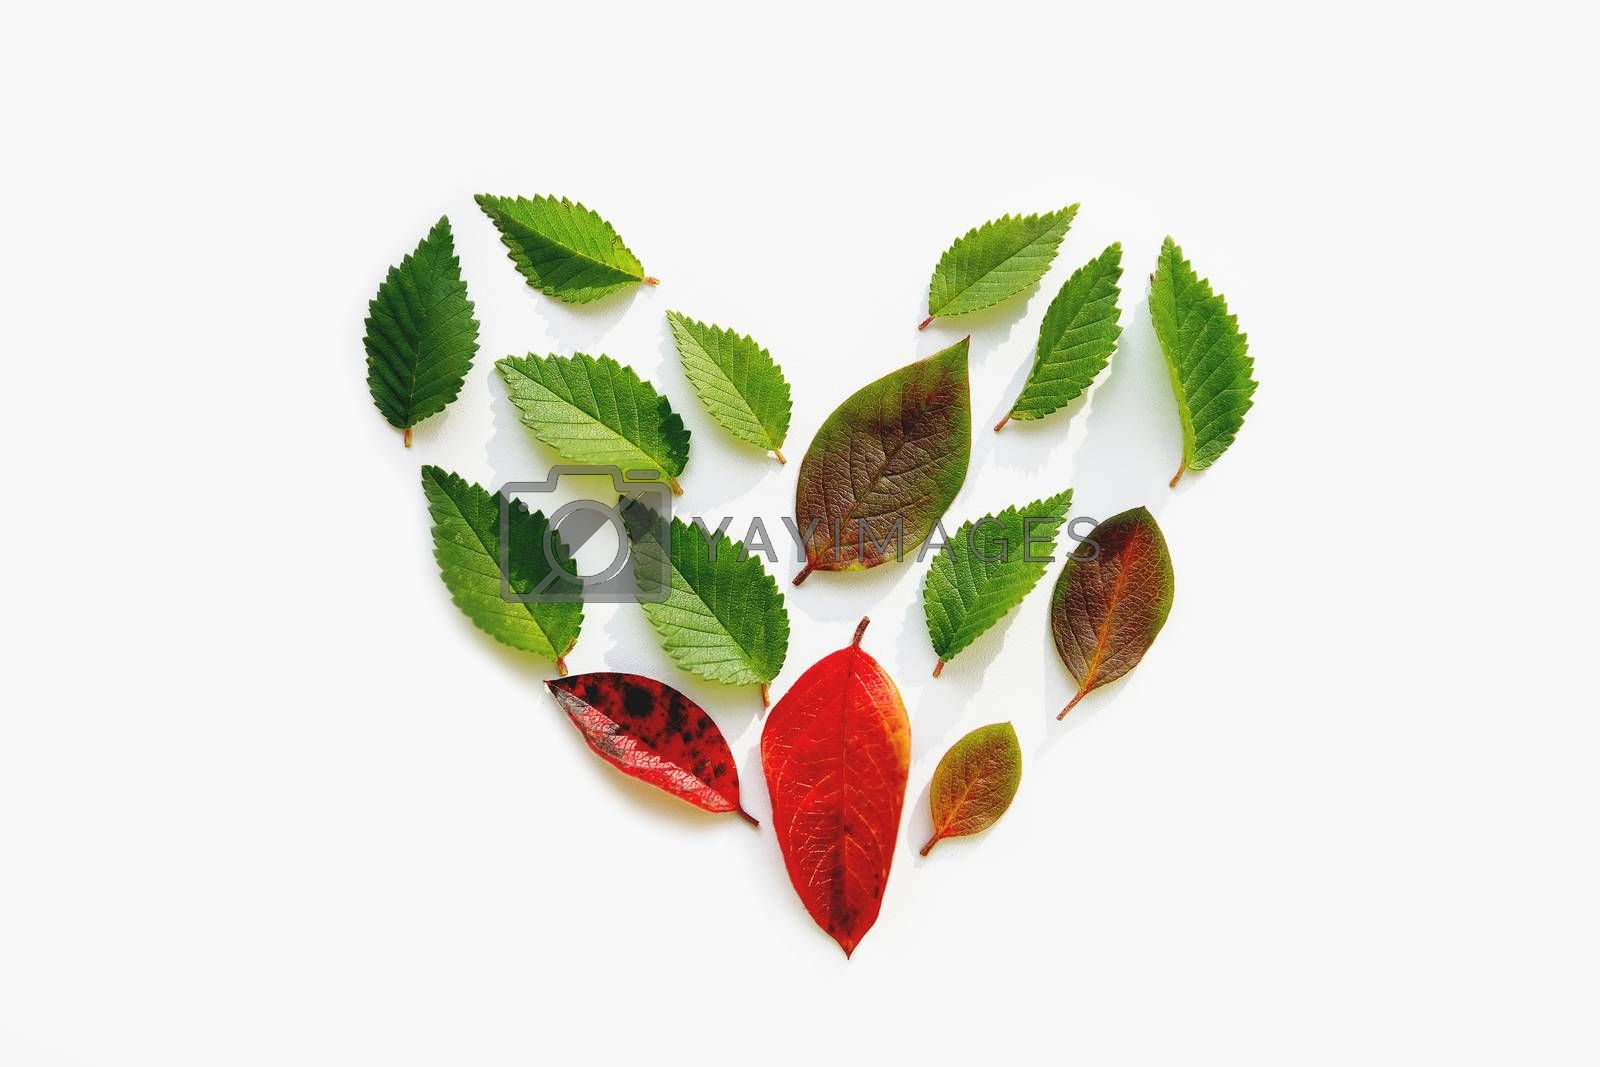 Top view on heart made of small bright green and red leaves on white background. Love of nature concept. Flat lay background with natural leaves.